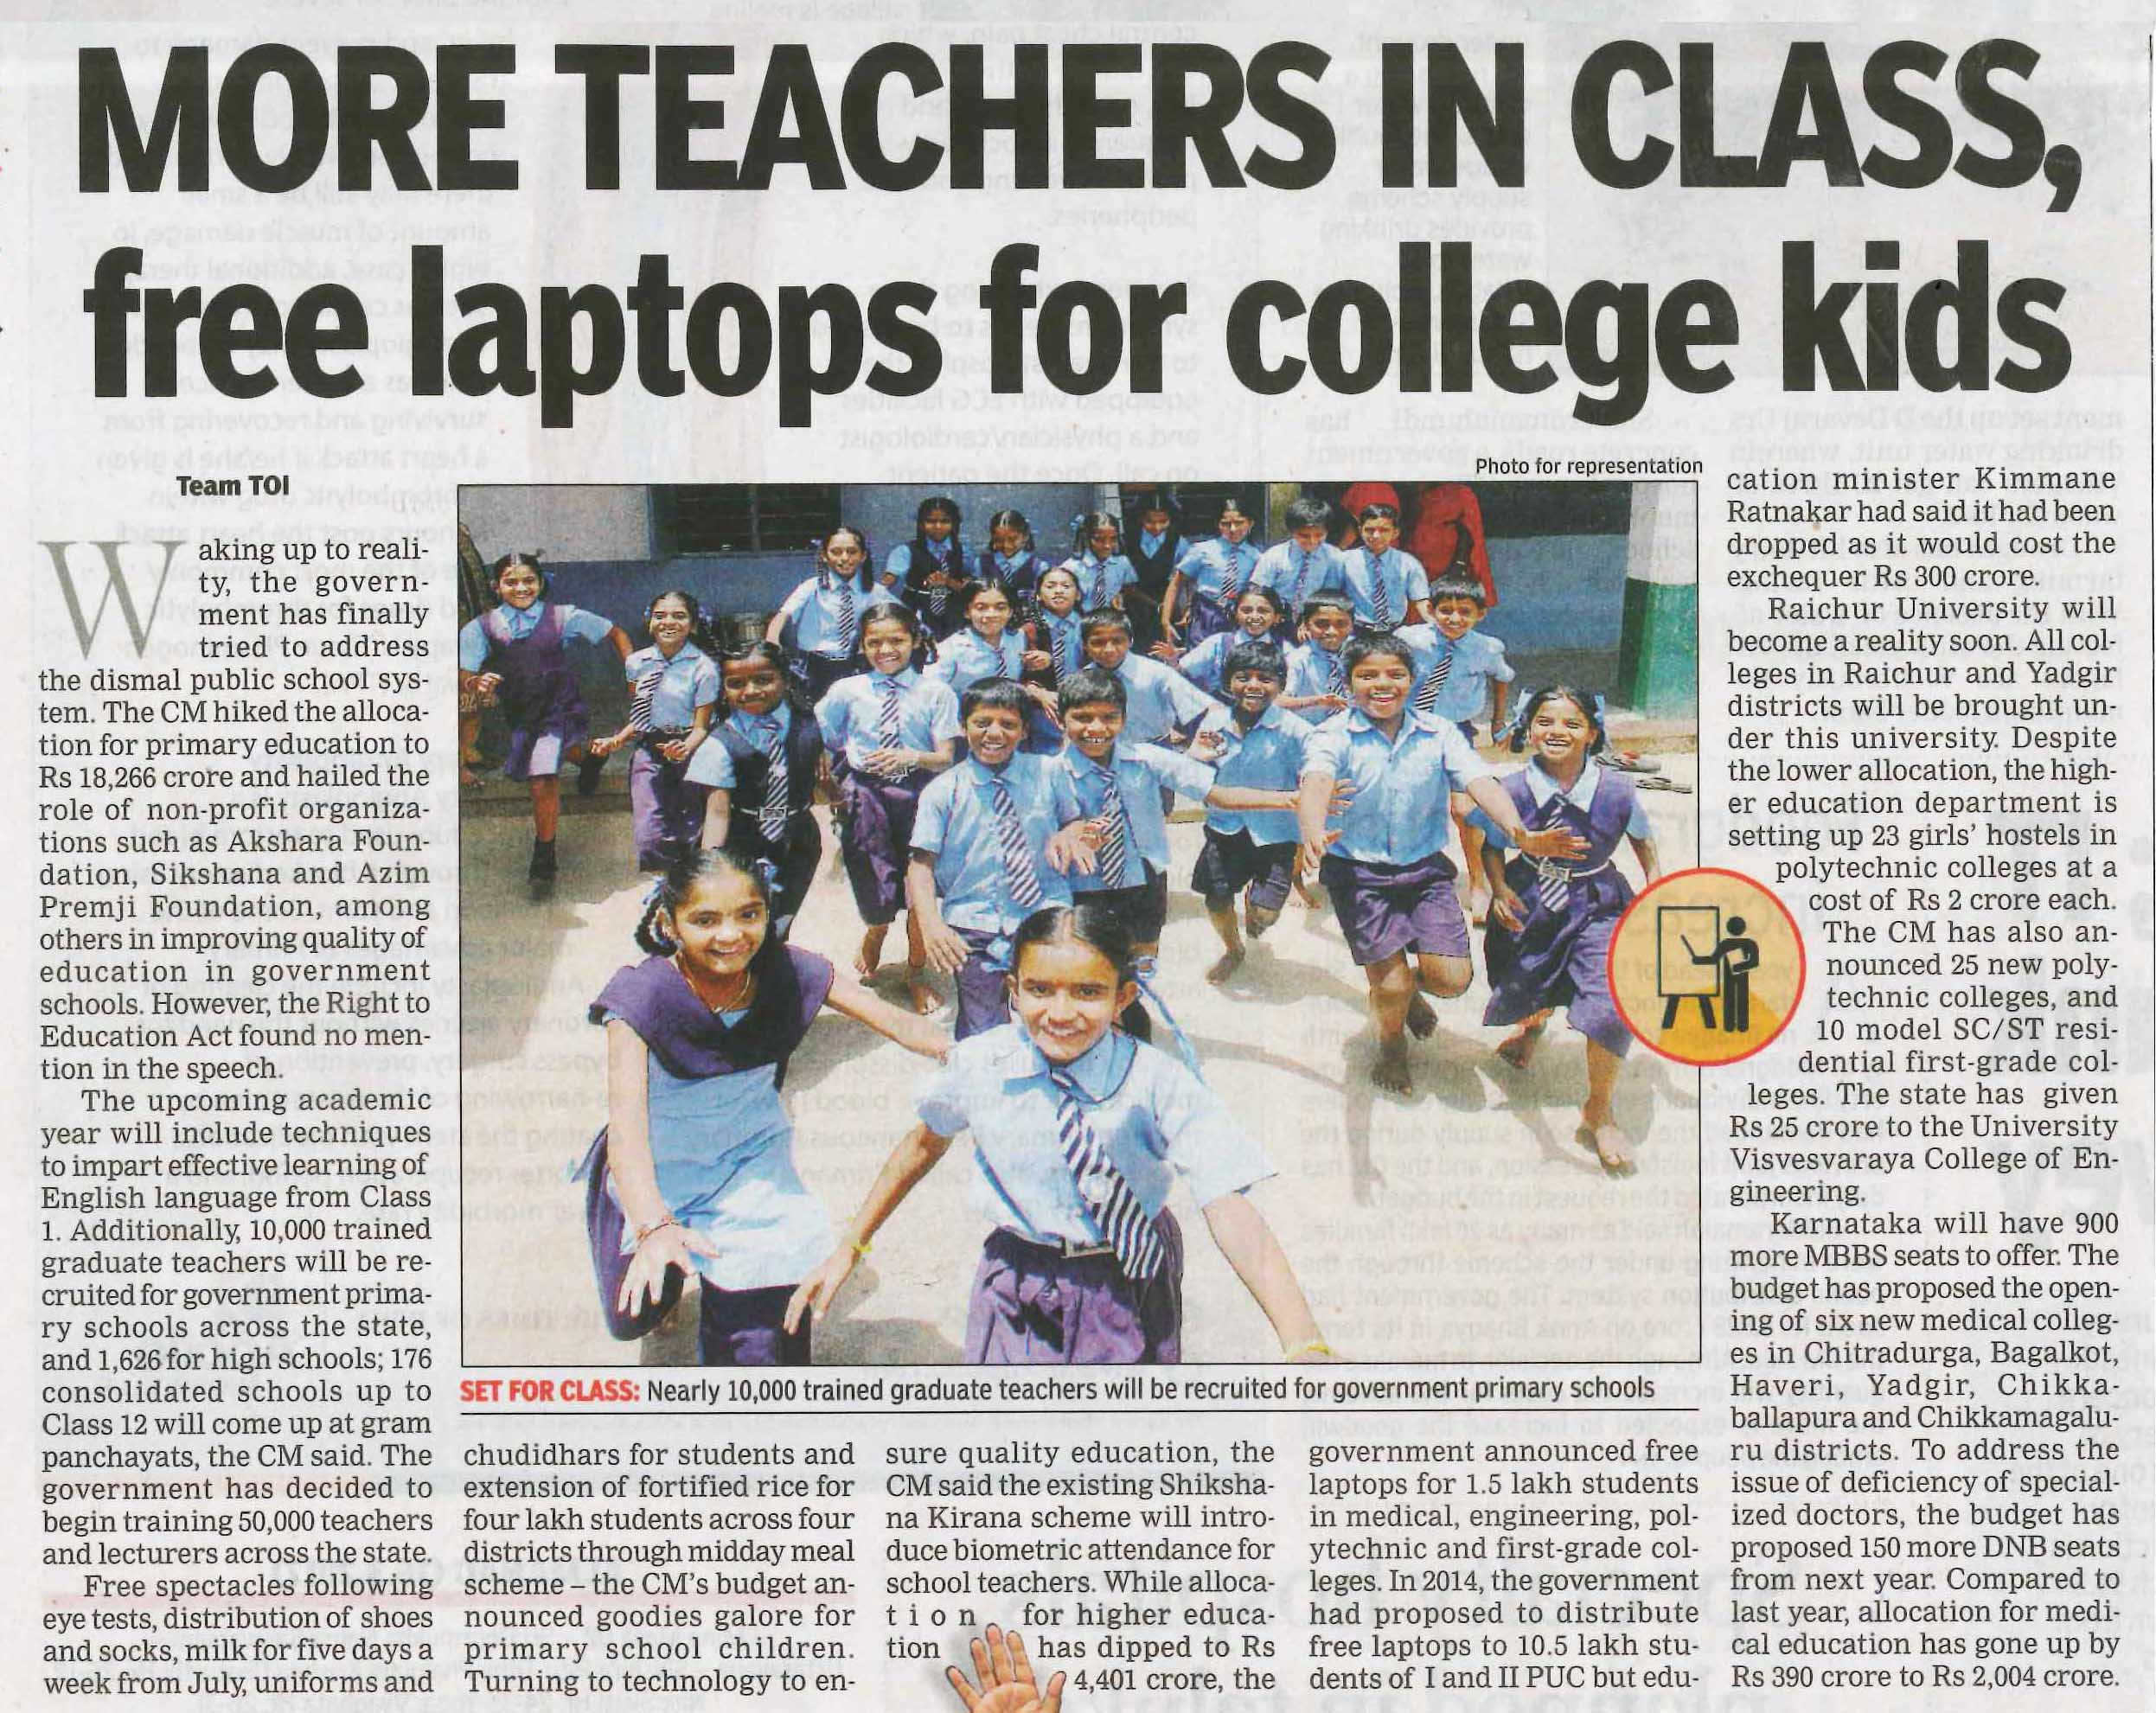 More Teachers in Class, Free laptops for college kids